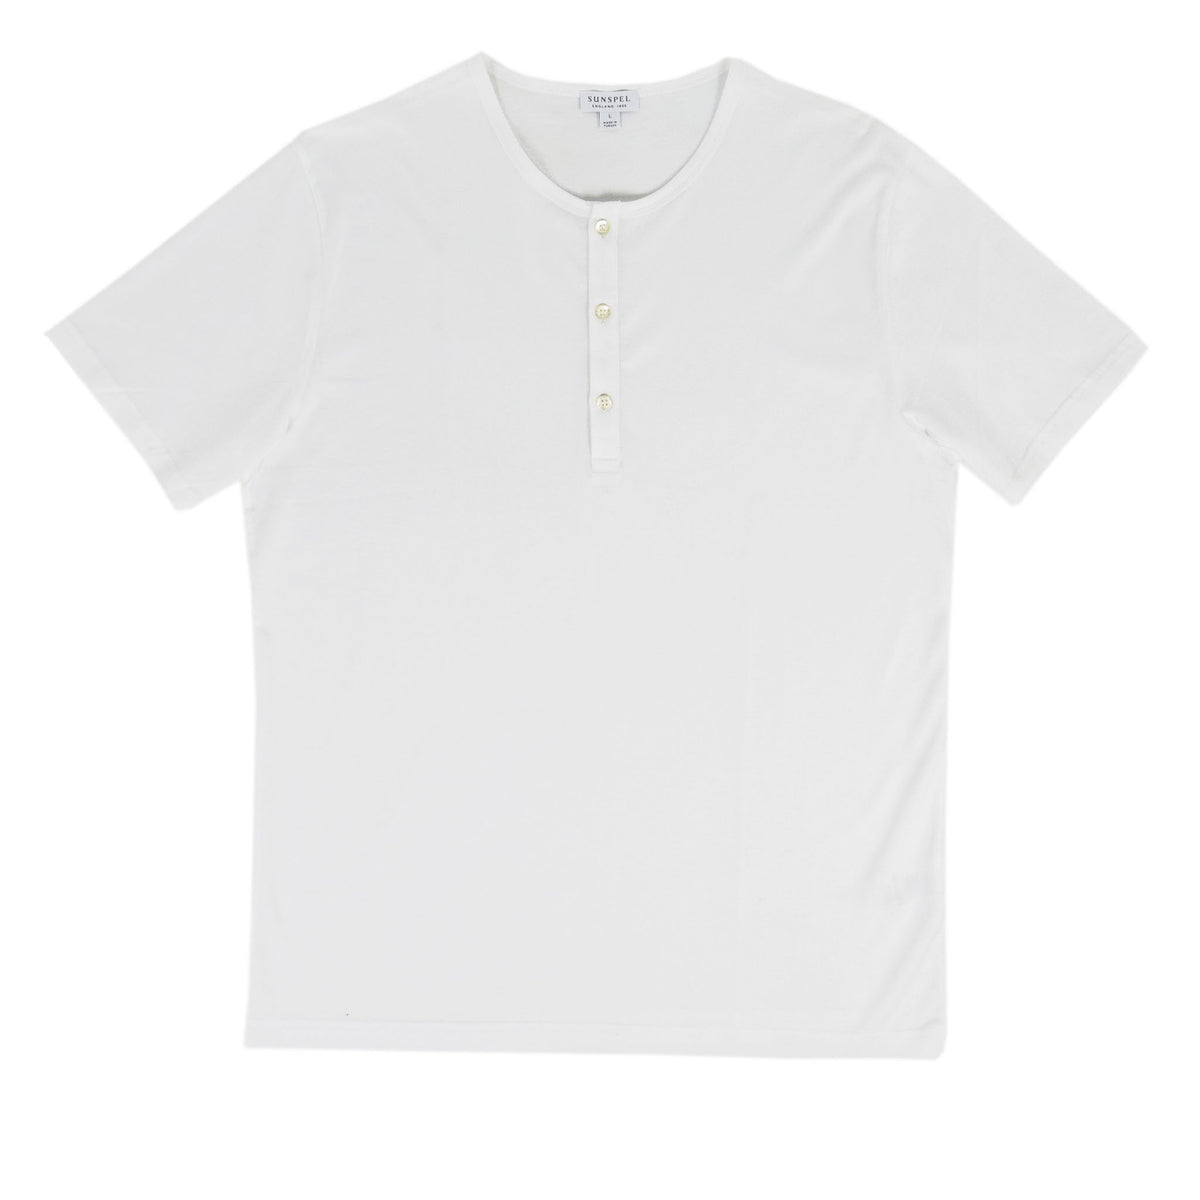 Sunspel Classic Henley T-Shirt White front